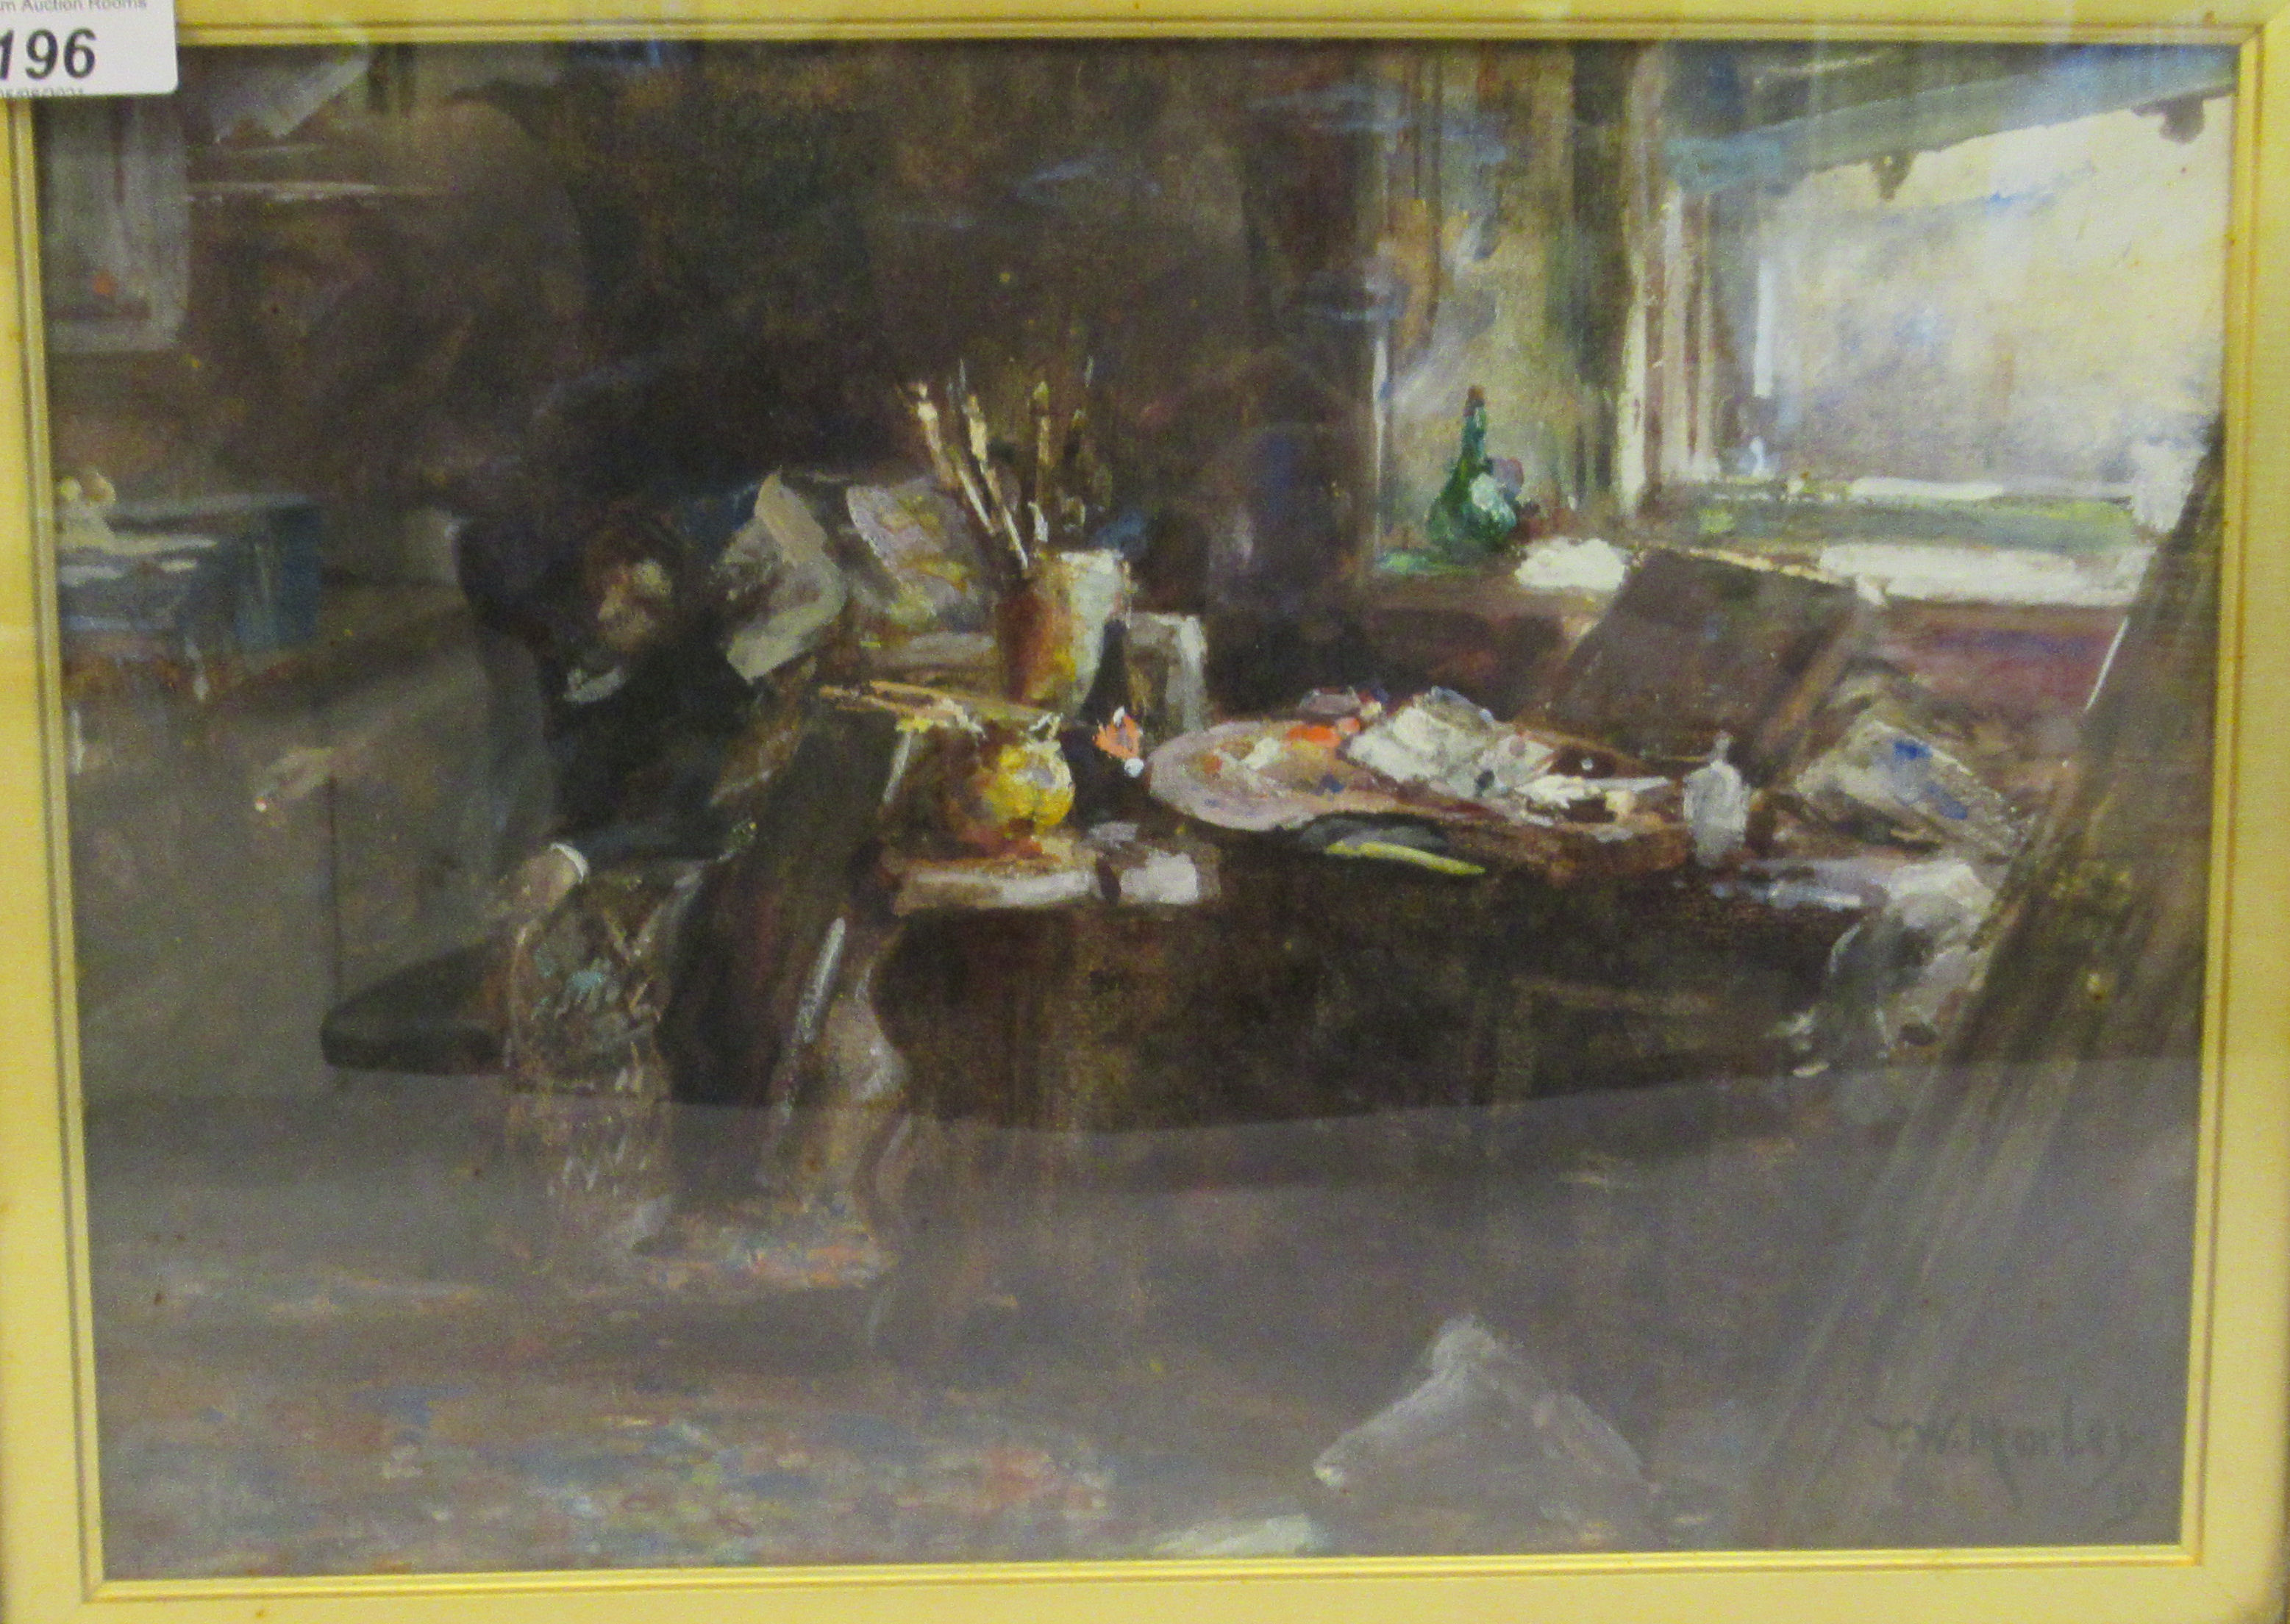 TW Morley - an interior studio scene with an artist resting in an armchair watercolour bears a - Image 2 of 7